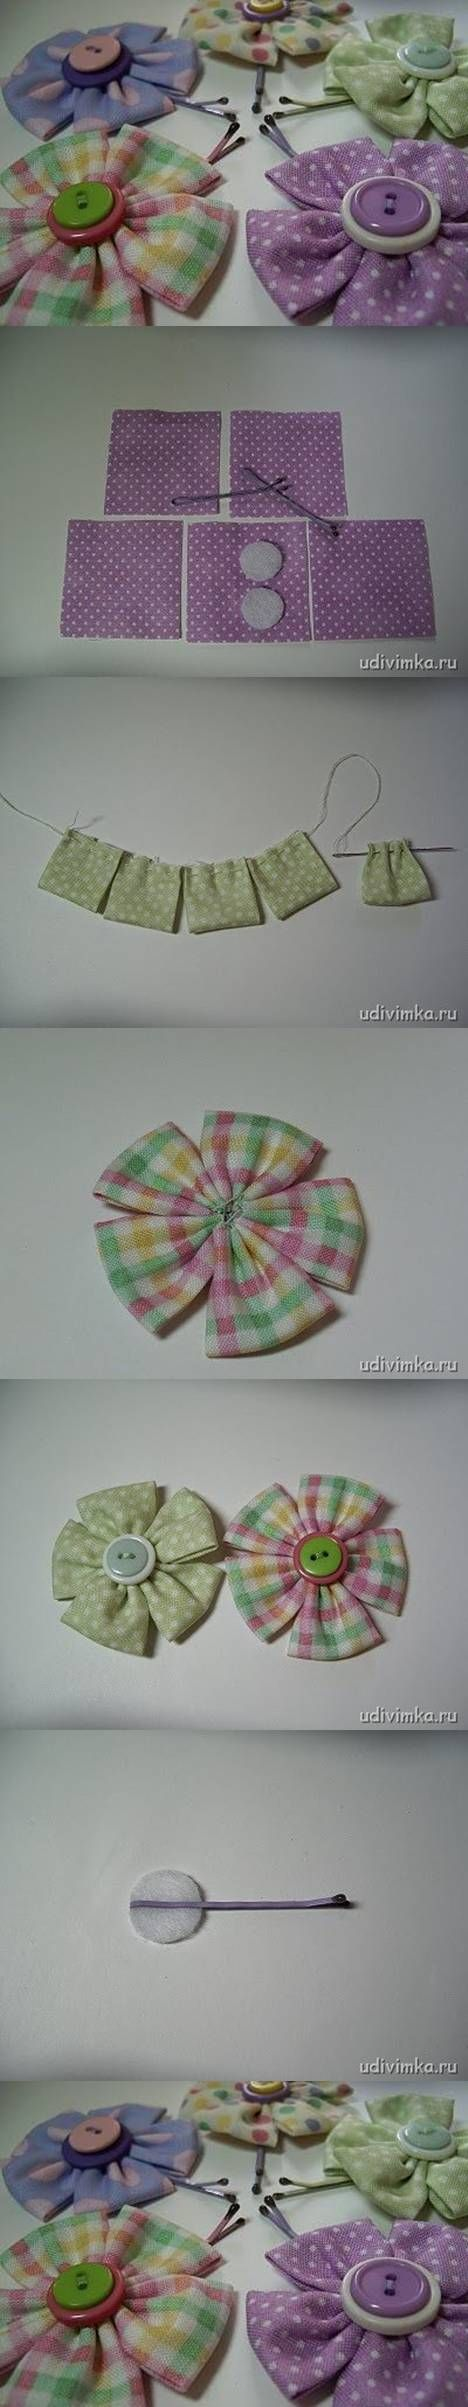 DIY Cute Fabric Flower Hairpin LIKE Us on Facebook ==> https://www.facebook.com/UsefulDiy